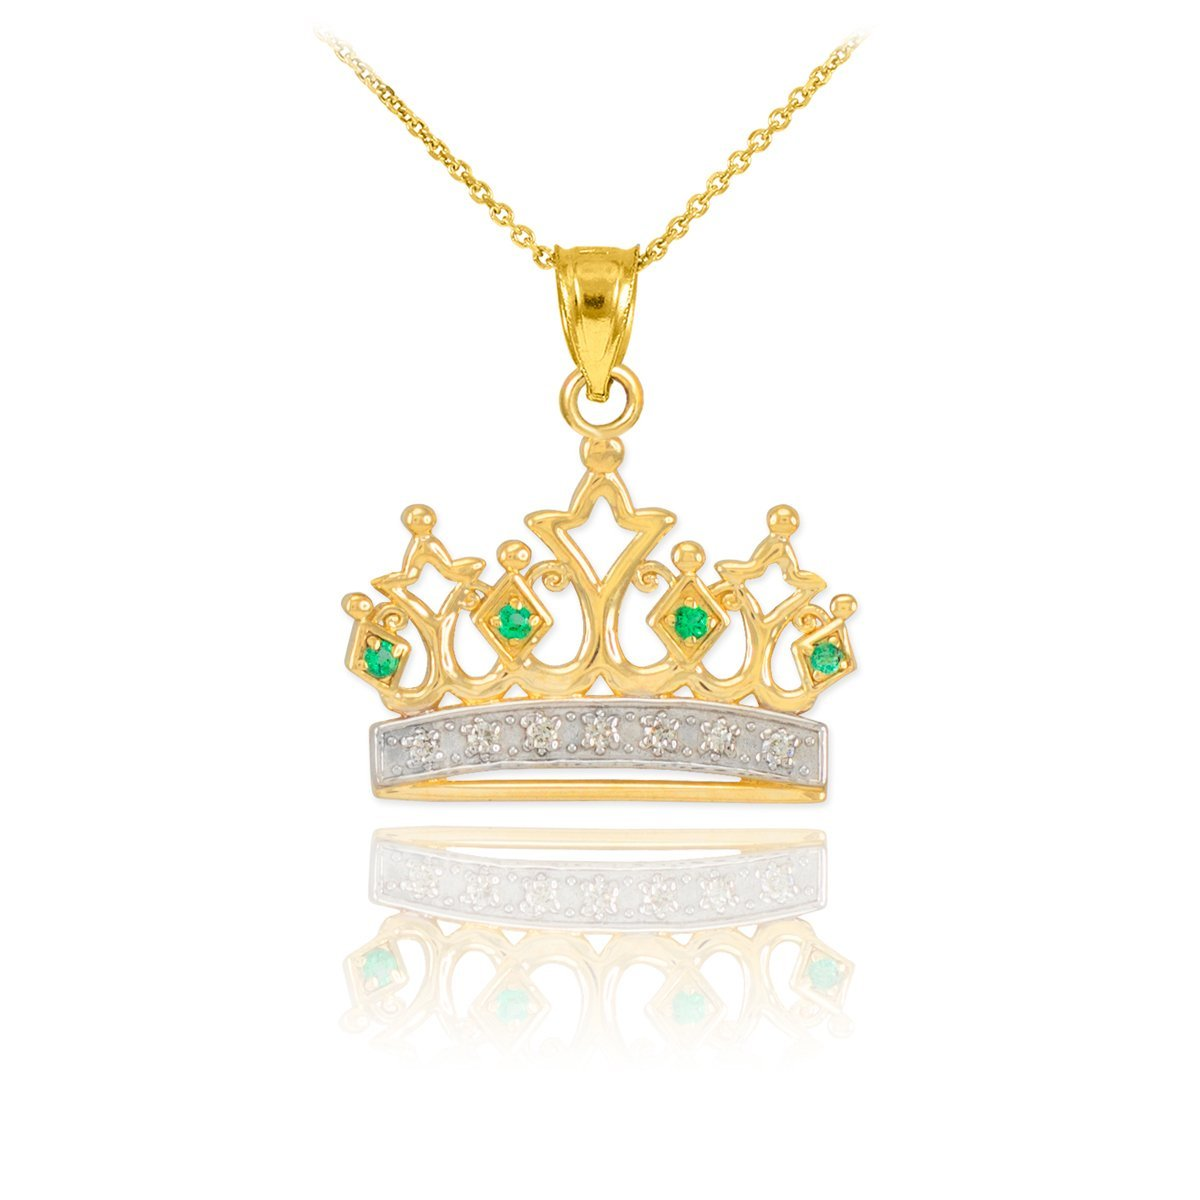 Royal 10k Yellow Gold Emerald and Diamond Tiara Charm Crown Pendant Necklace